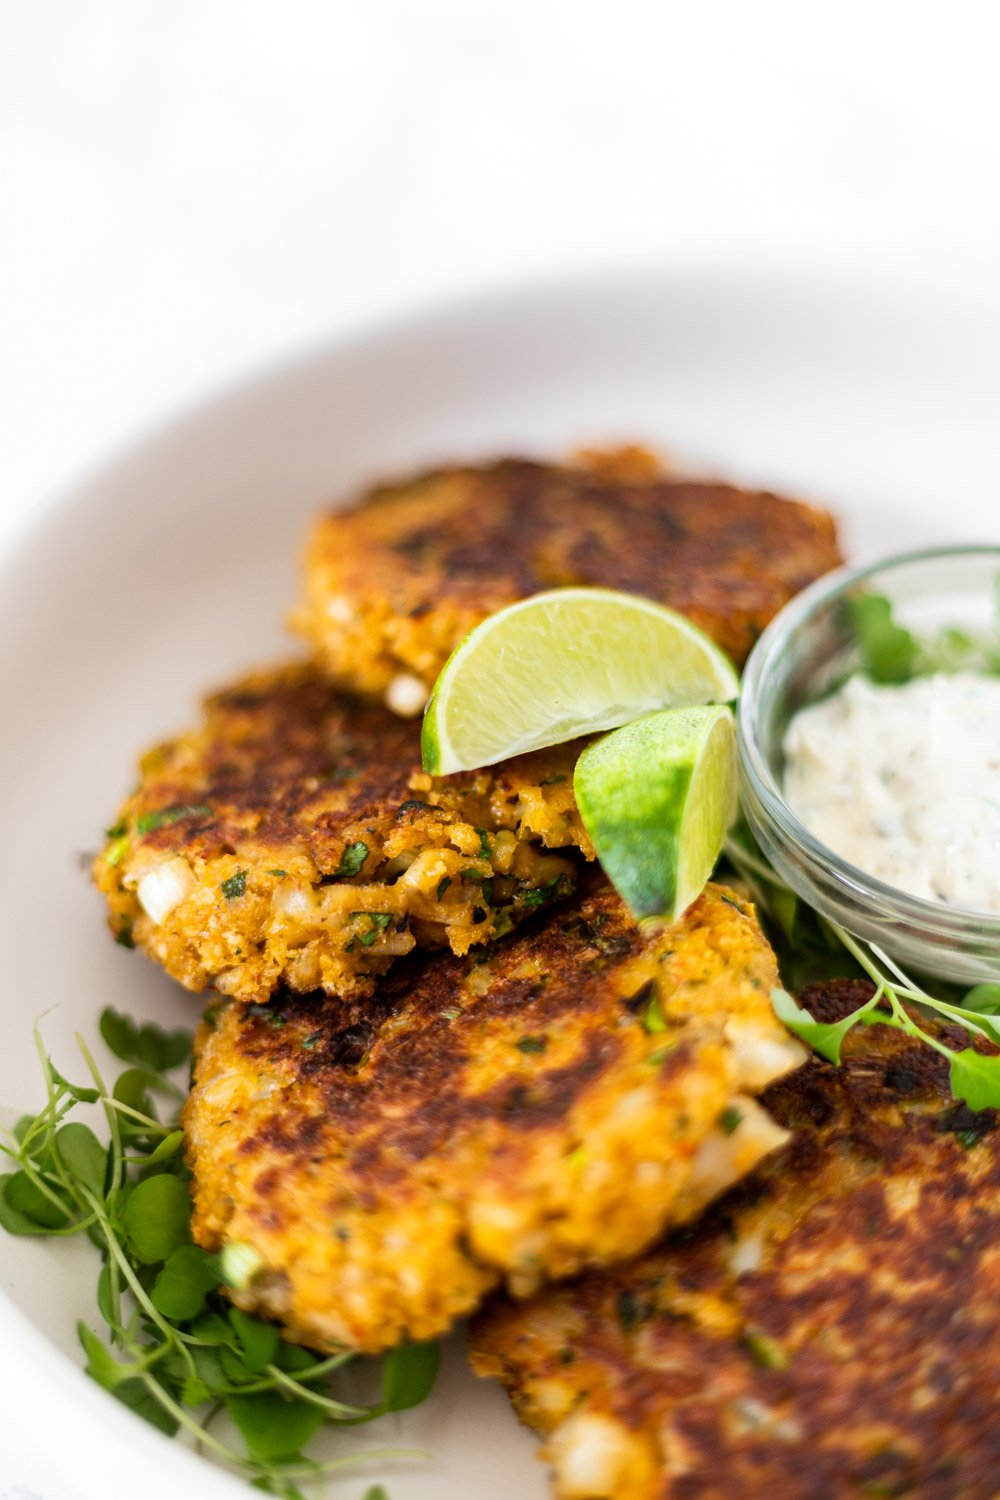 A side view of Thai fish cakes on a plate with tartar sauce.